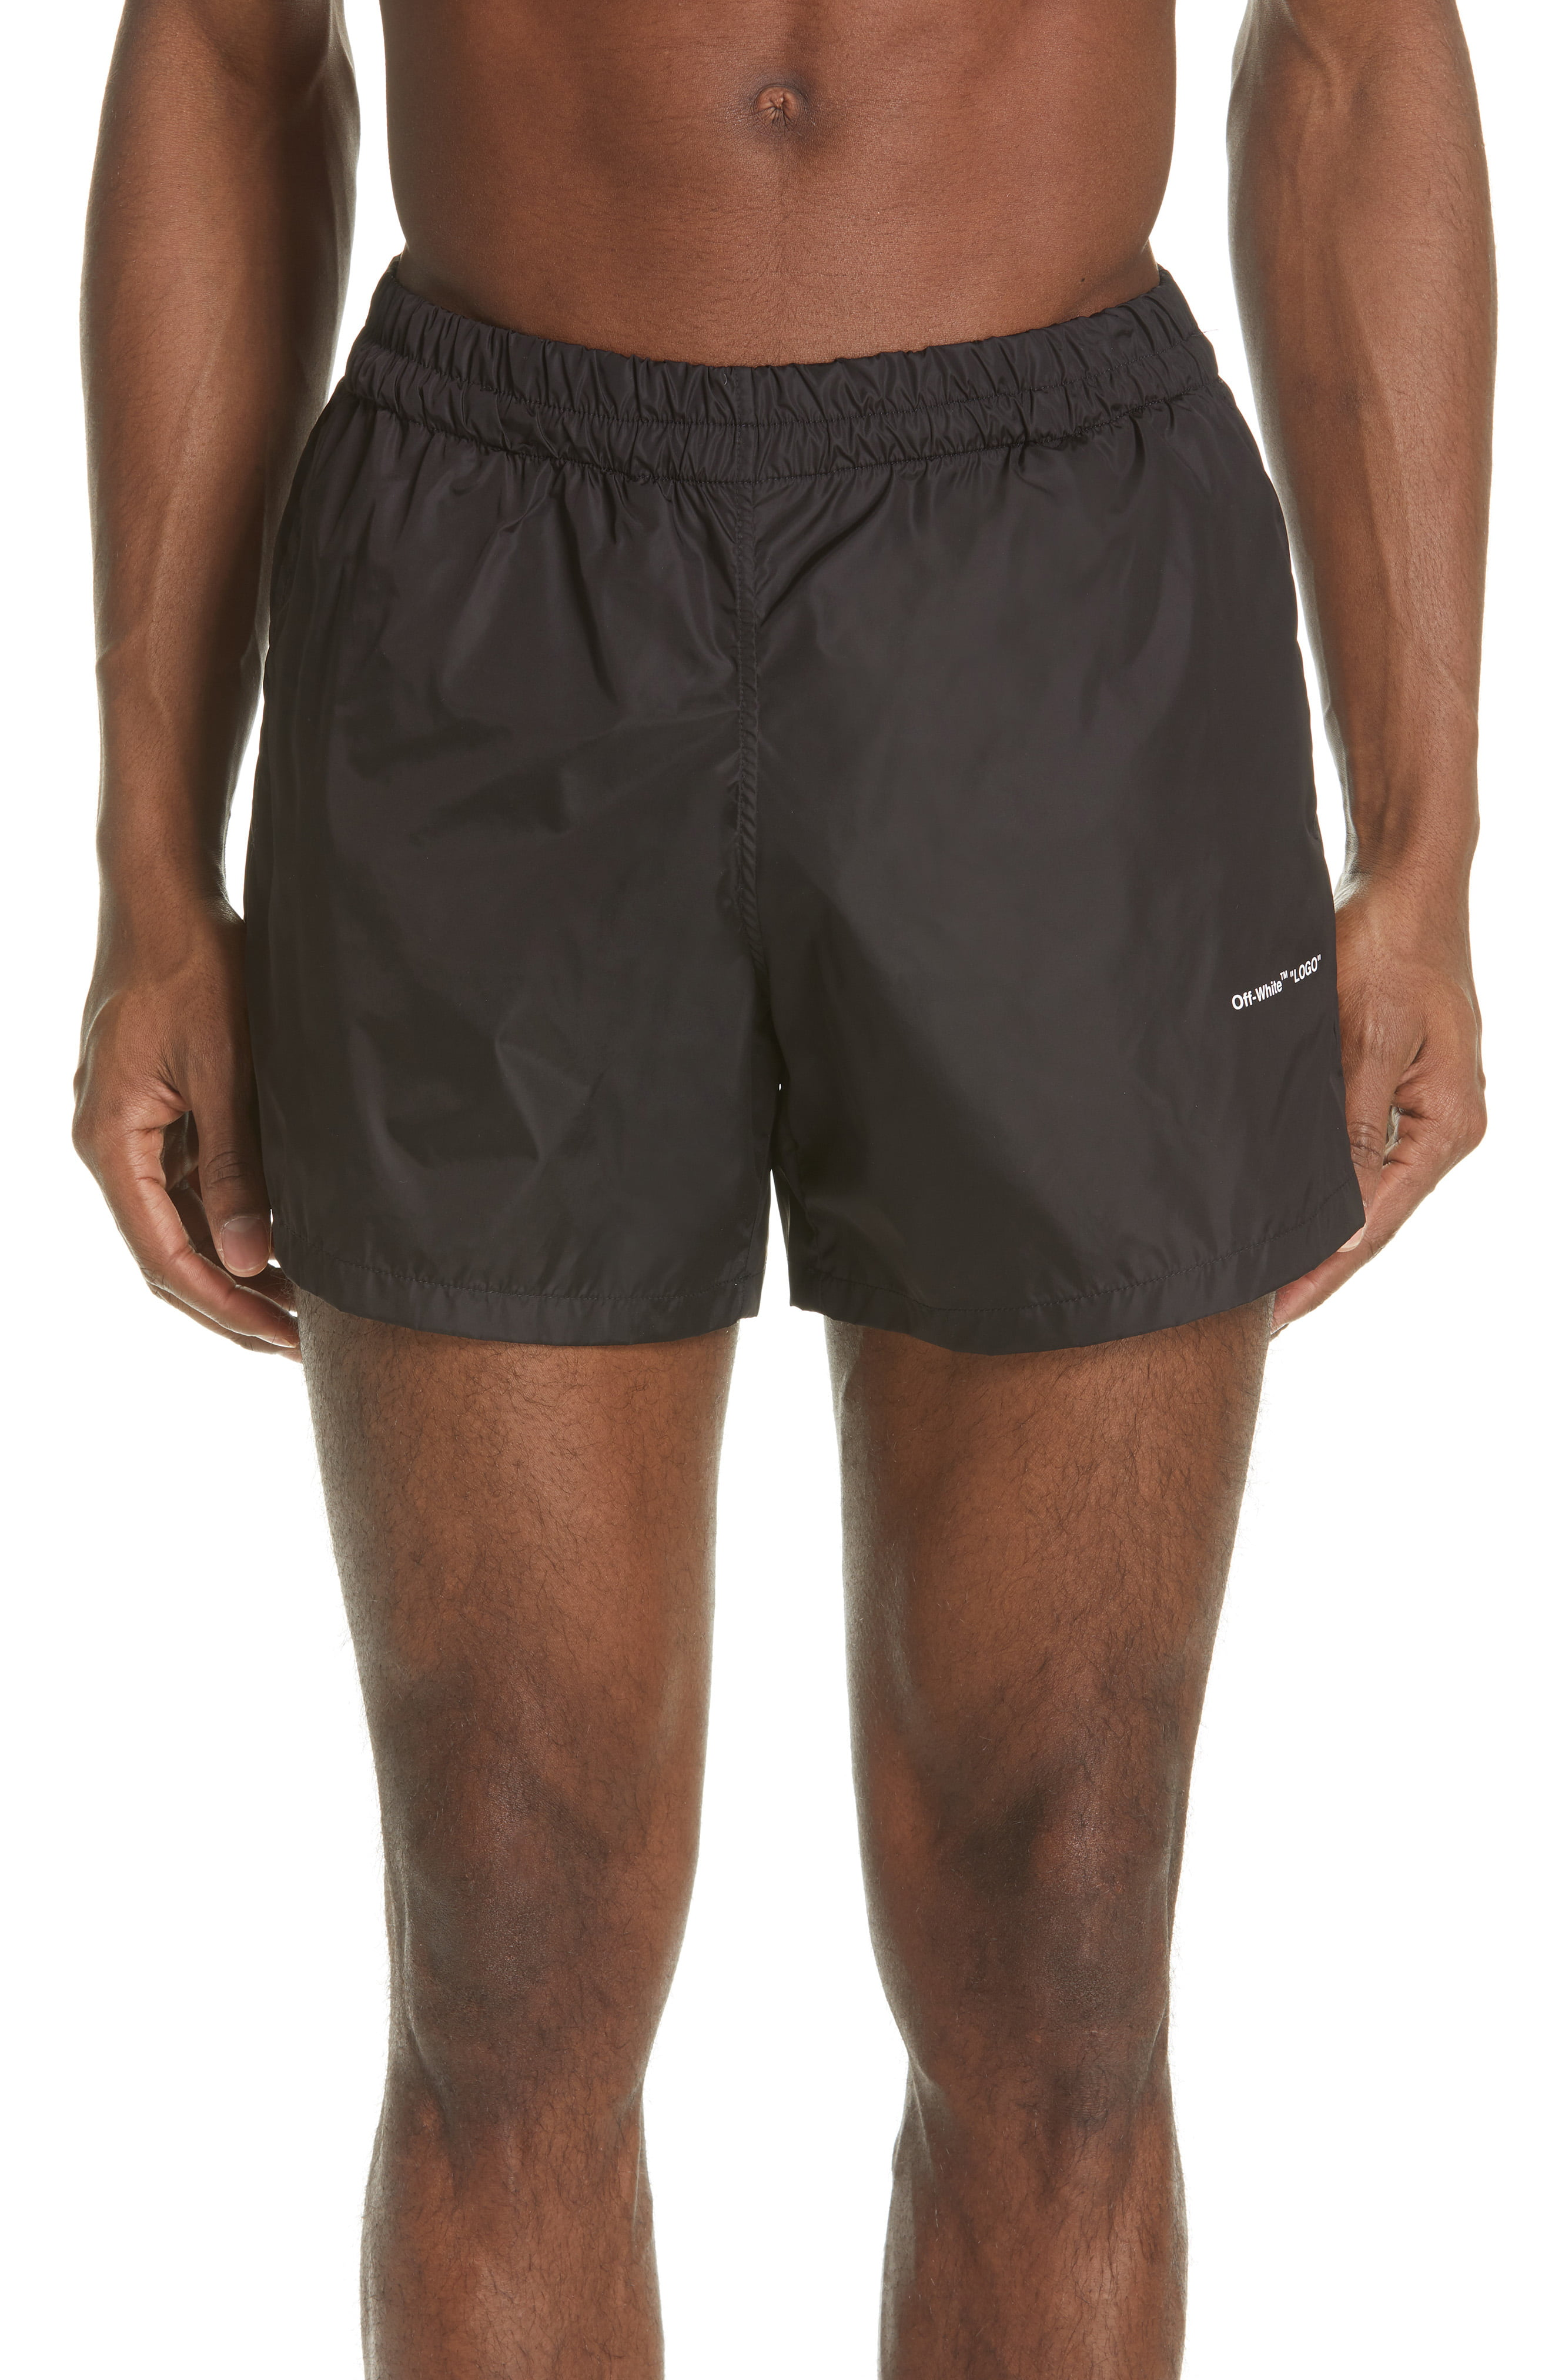 how to find choose official value for money Men's Off-White Swim Trunks, Size X-Large - Black